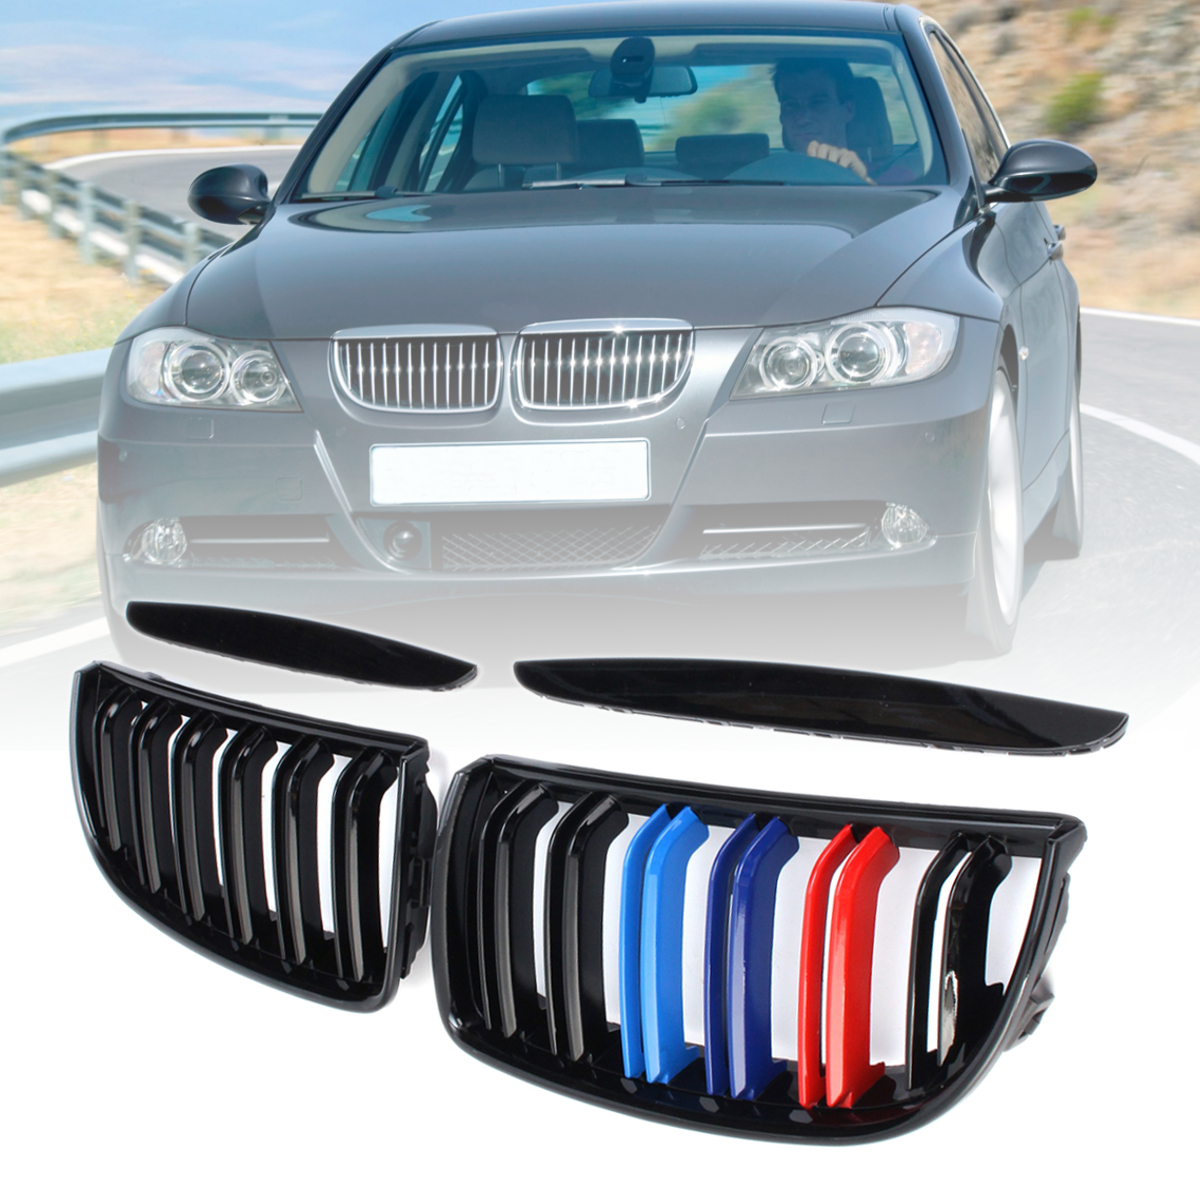 For BMW E90 E91 3 Series 2004 2005 2006 2007 1 Pair Gloss Matt Black M Color 2 Slat Line Front Kidney Grille Grill Double Slat e60 abs front kidney grille grill for bmw 5 series e60 2004 2009 sedan e61 hatchback 1 slat 2 slat 535i 545i